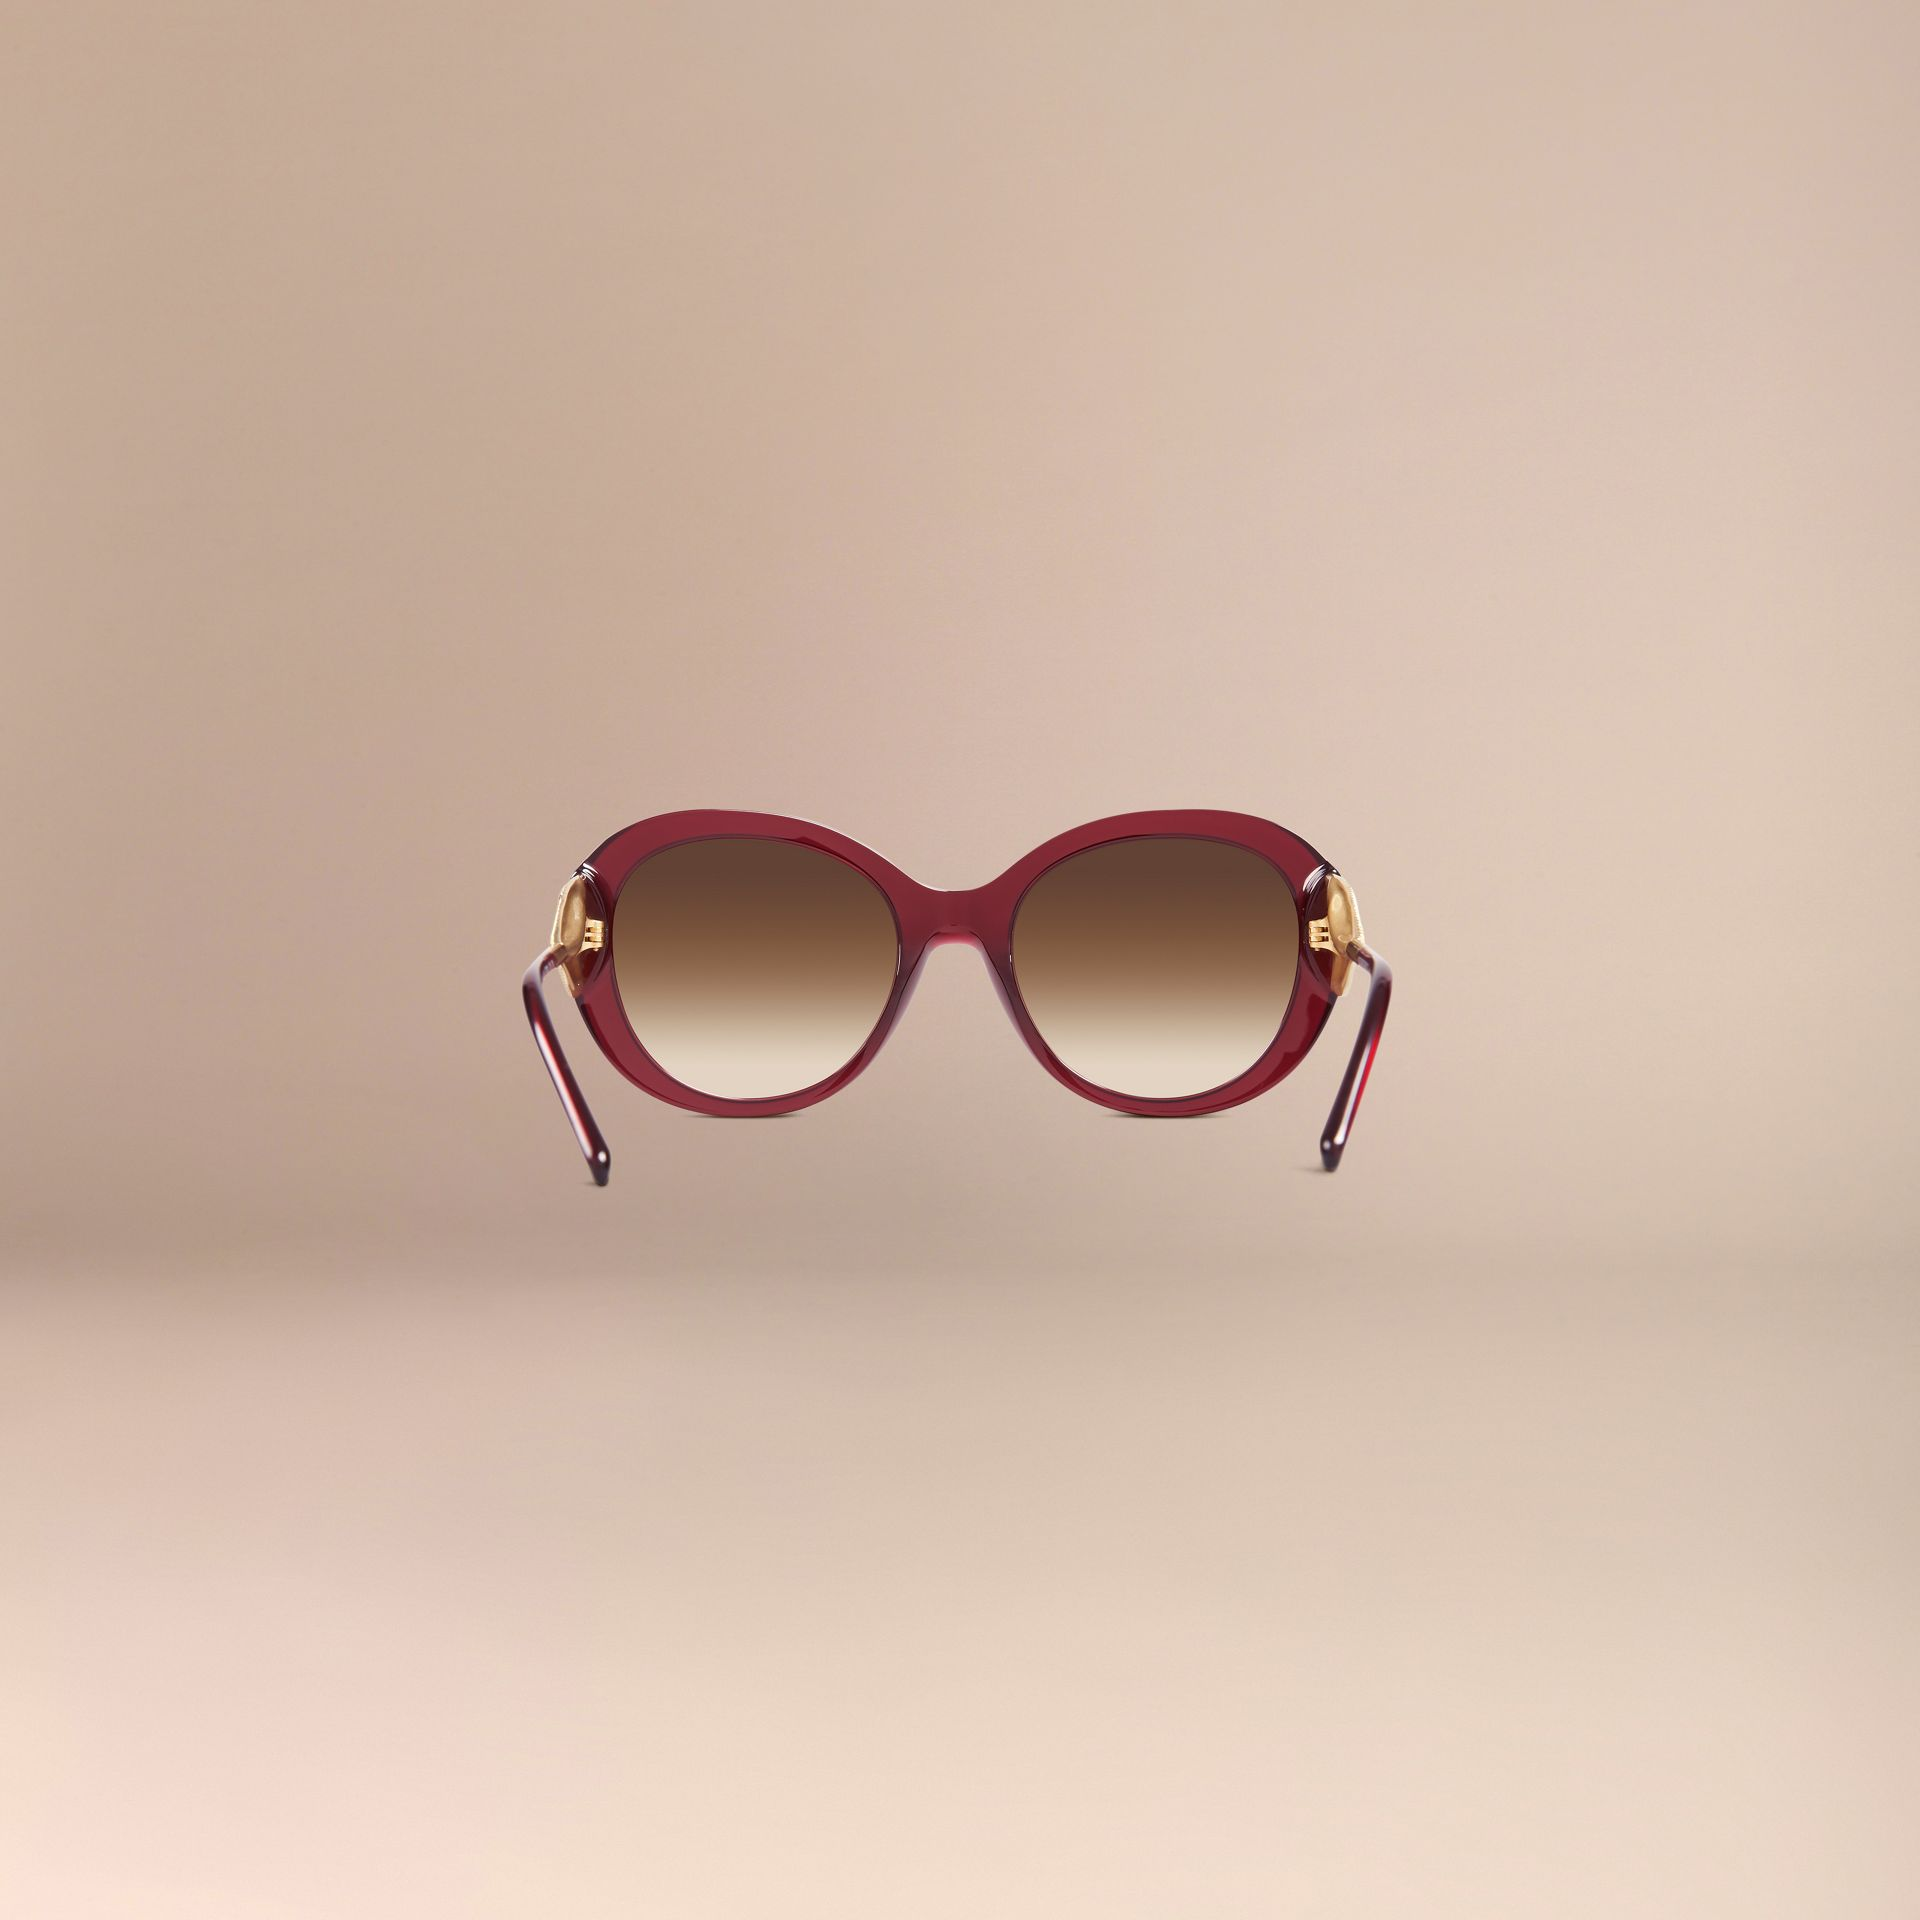 Oxblood Oversize Round Frame Sunglasses Oxblood - gallery image 4